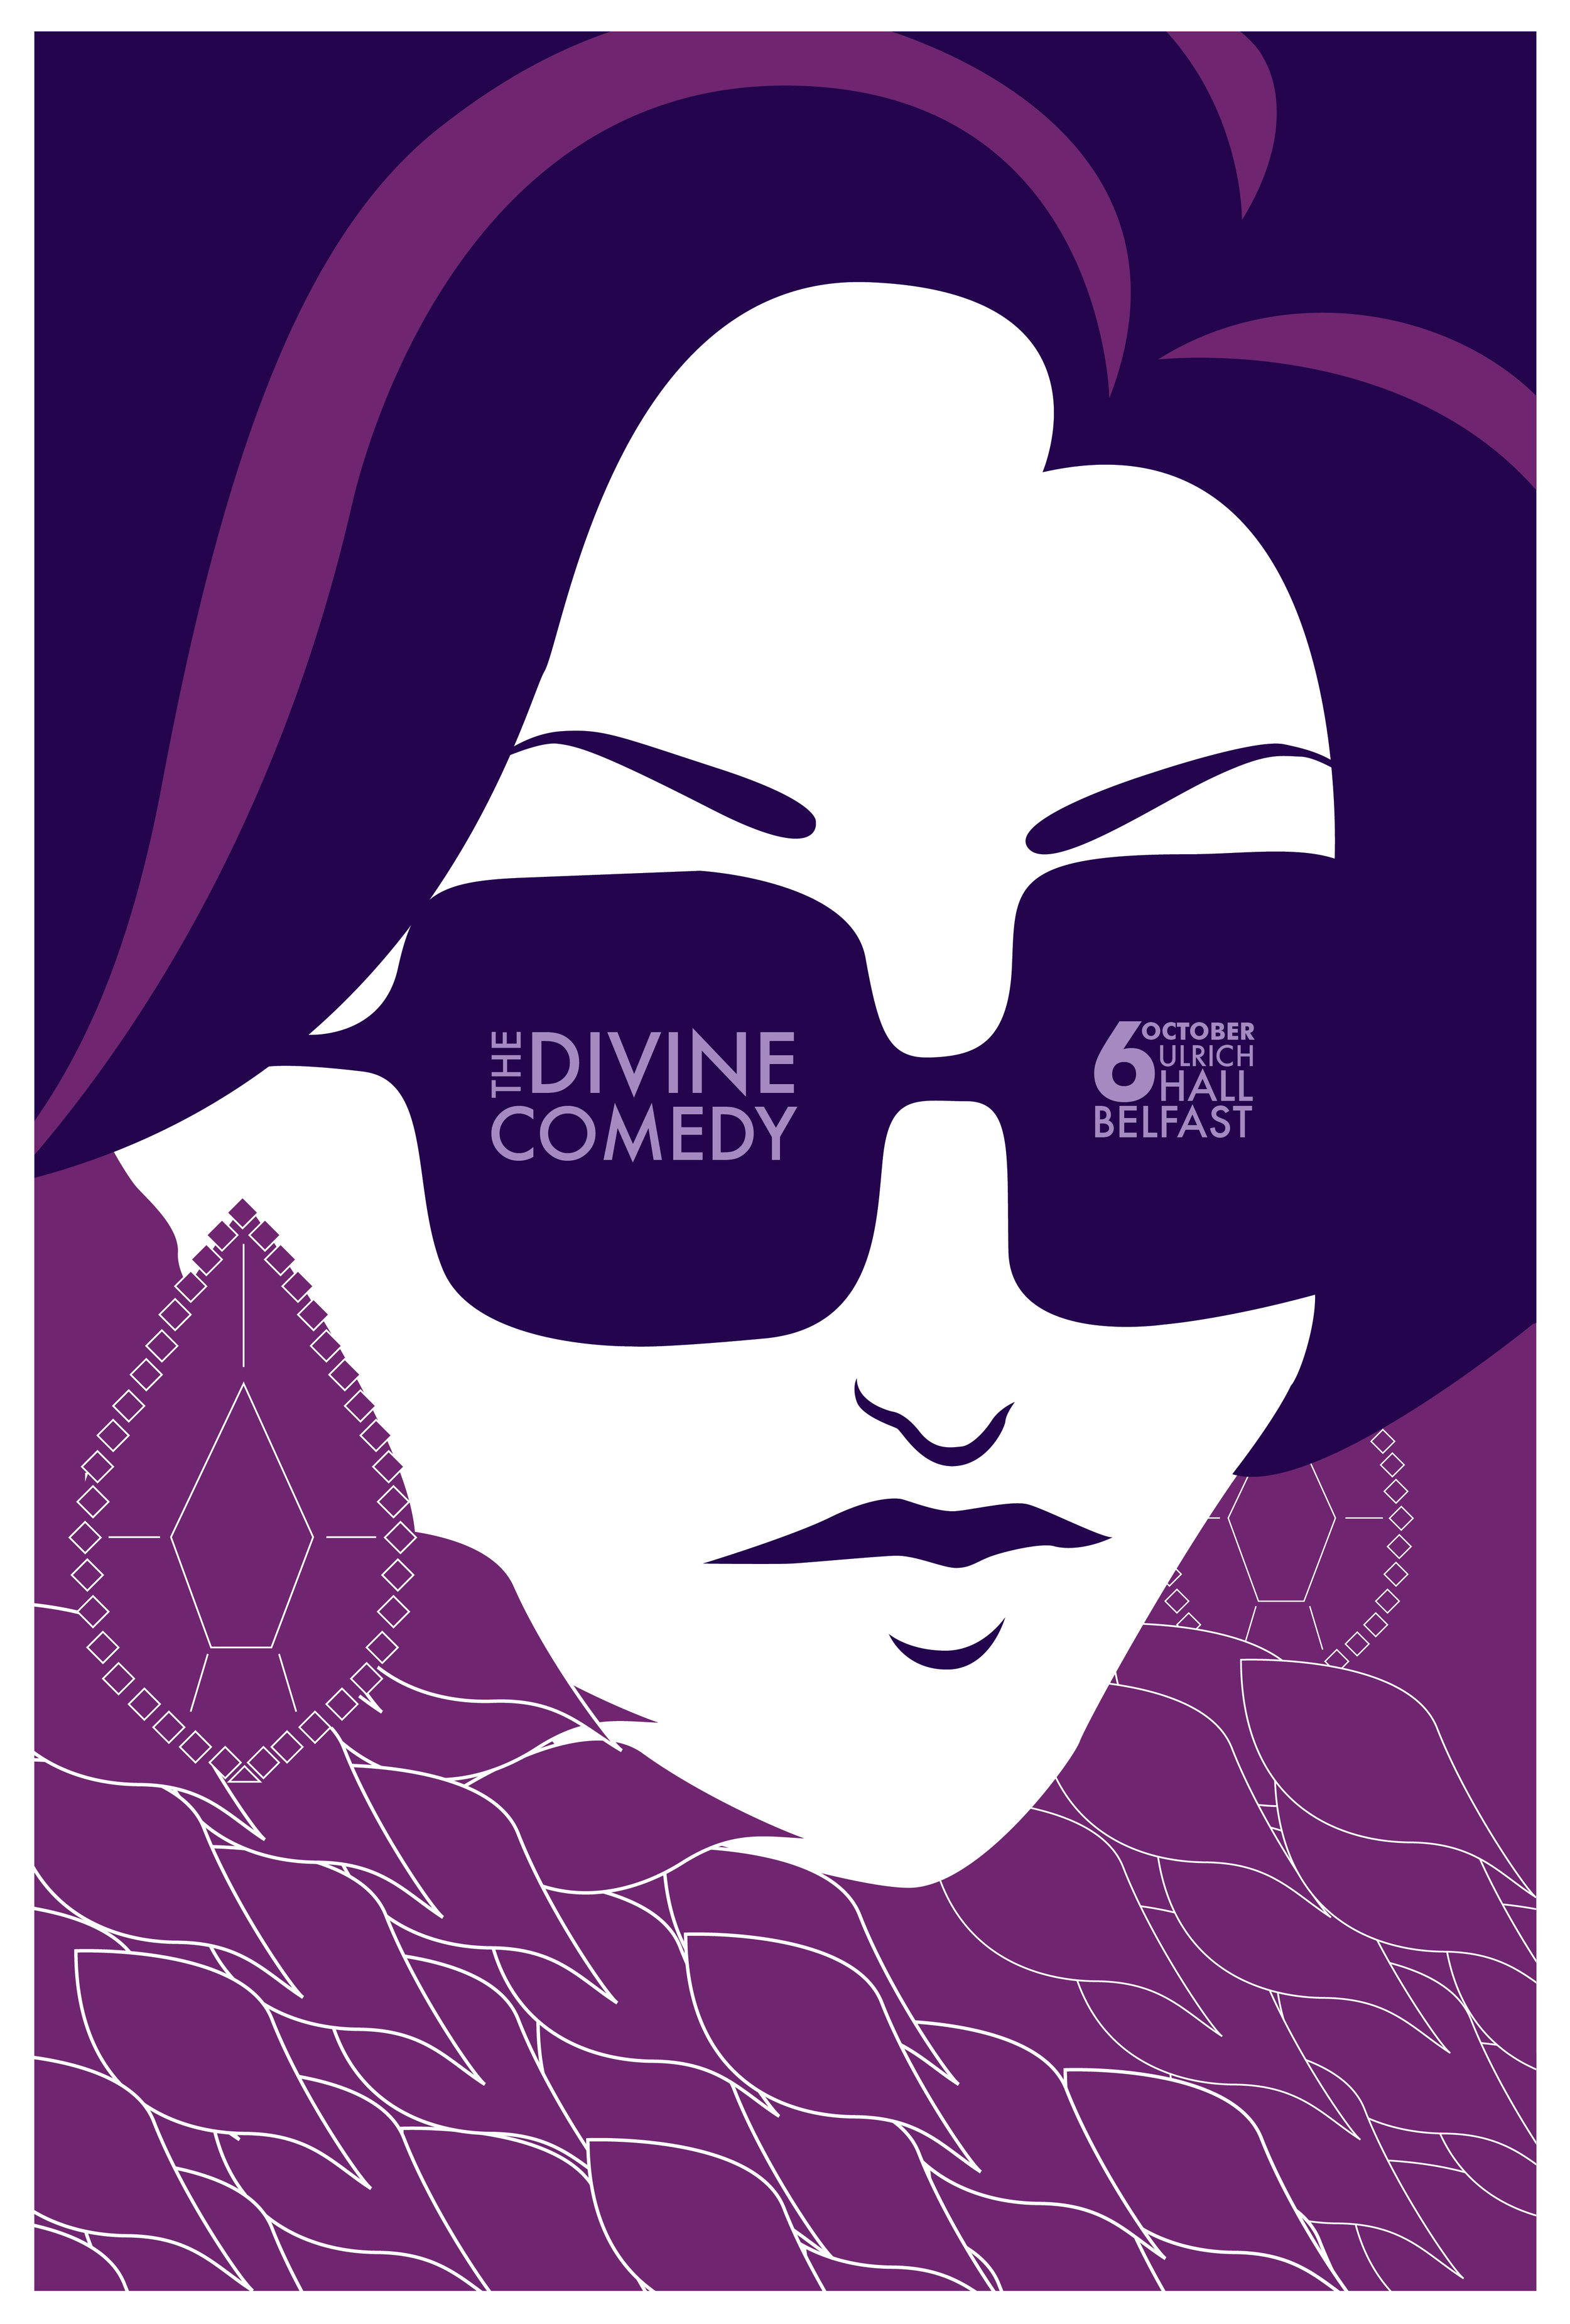 DivineComedyPoster02